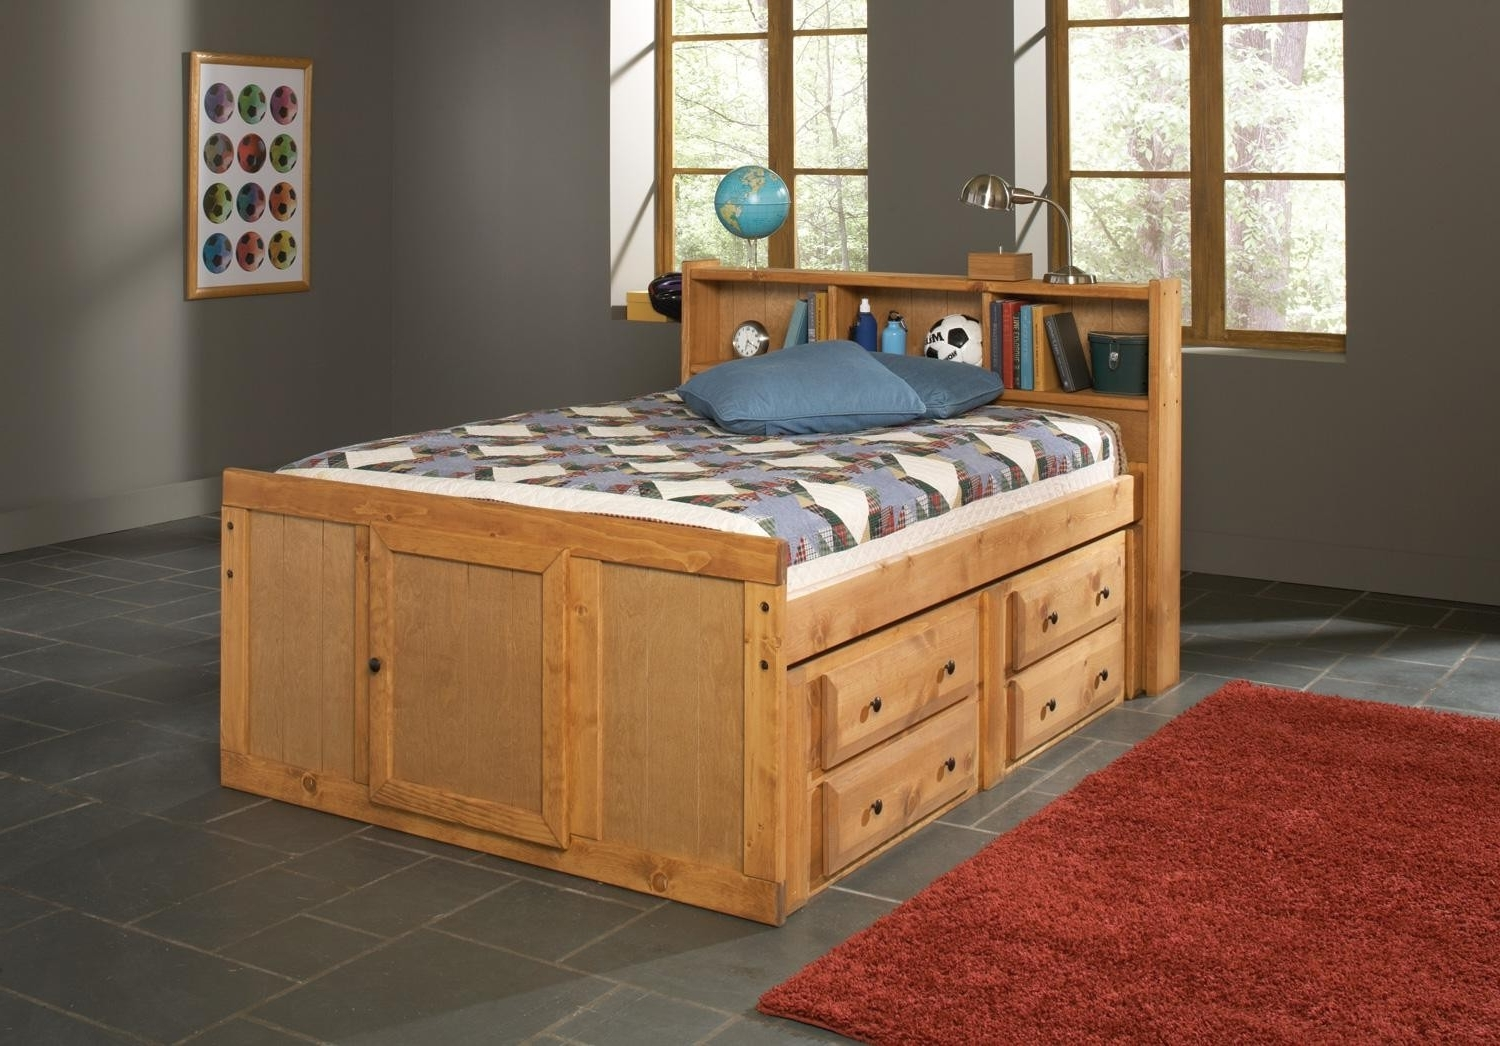 2017 Full Size Storage Bed With Bookcases Headboard For Oak Finish Children Full Size Bed With Bookcase Storage Headboard (View 5 of 15)